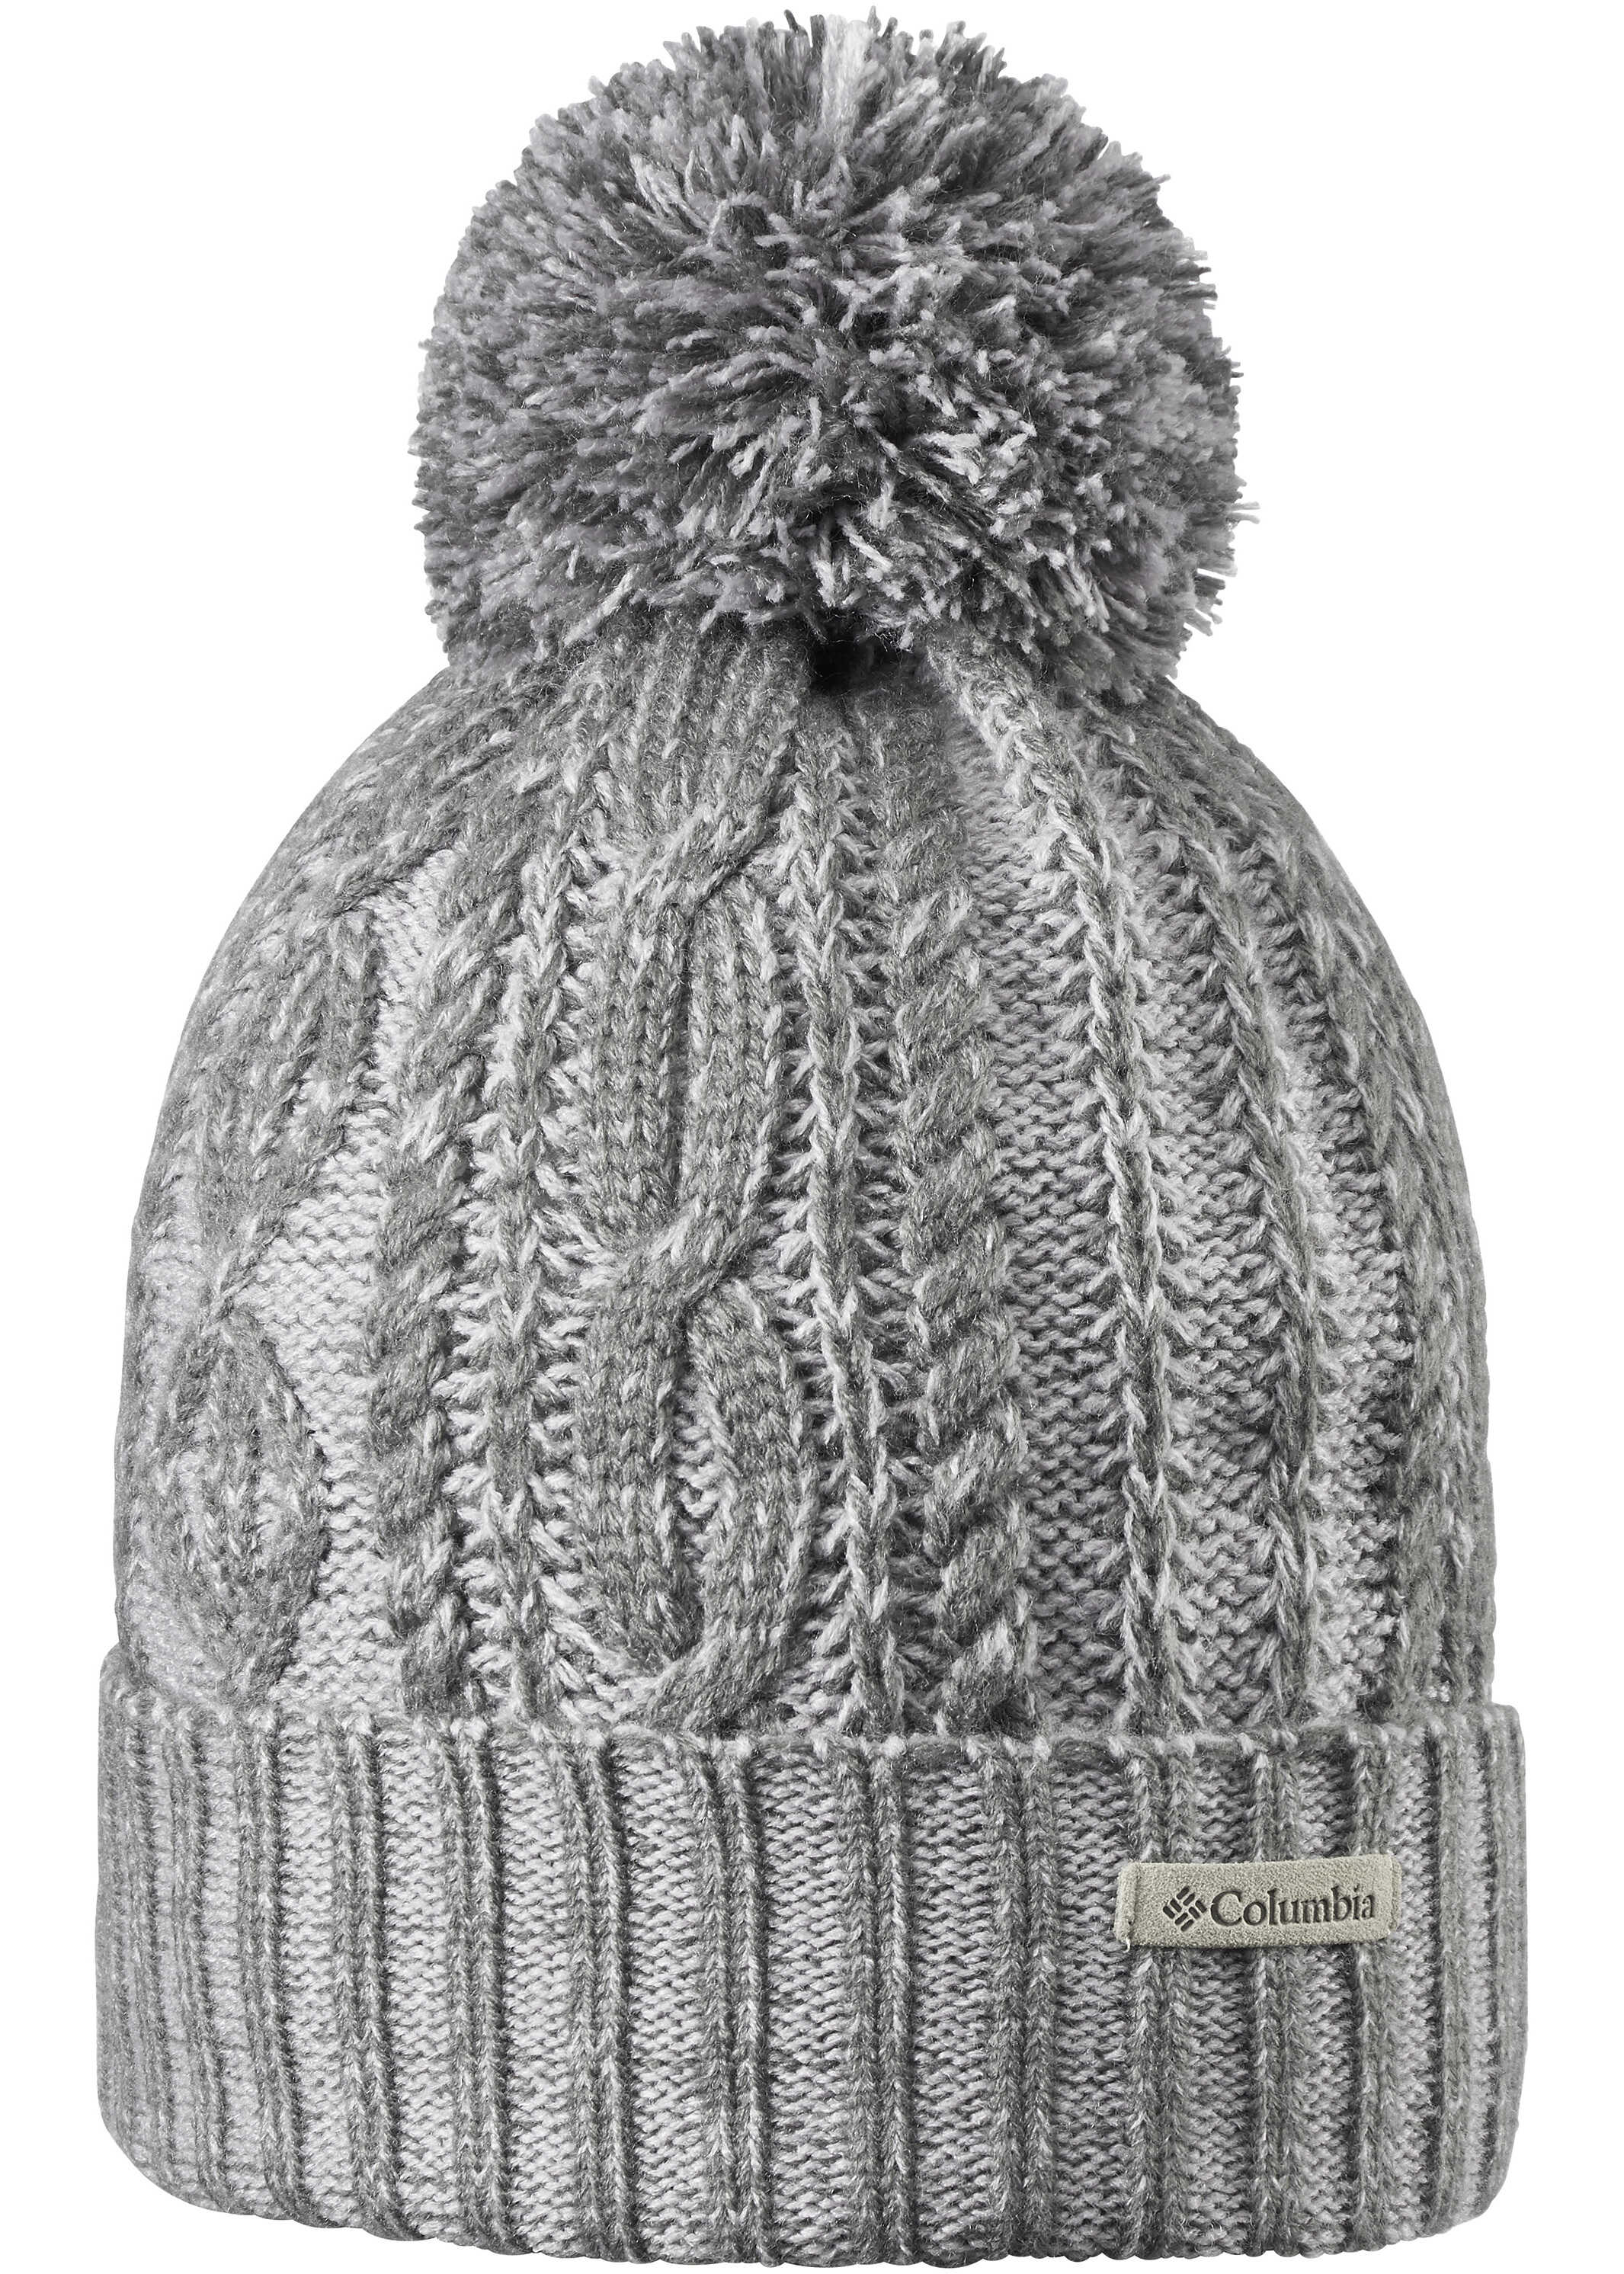 Columbia Blizzard Pass Beanie-Charcoal Charcoal